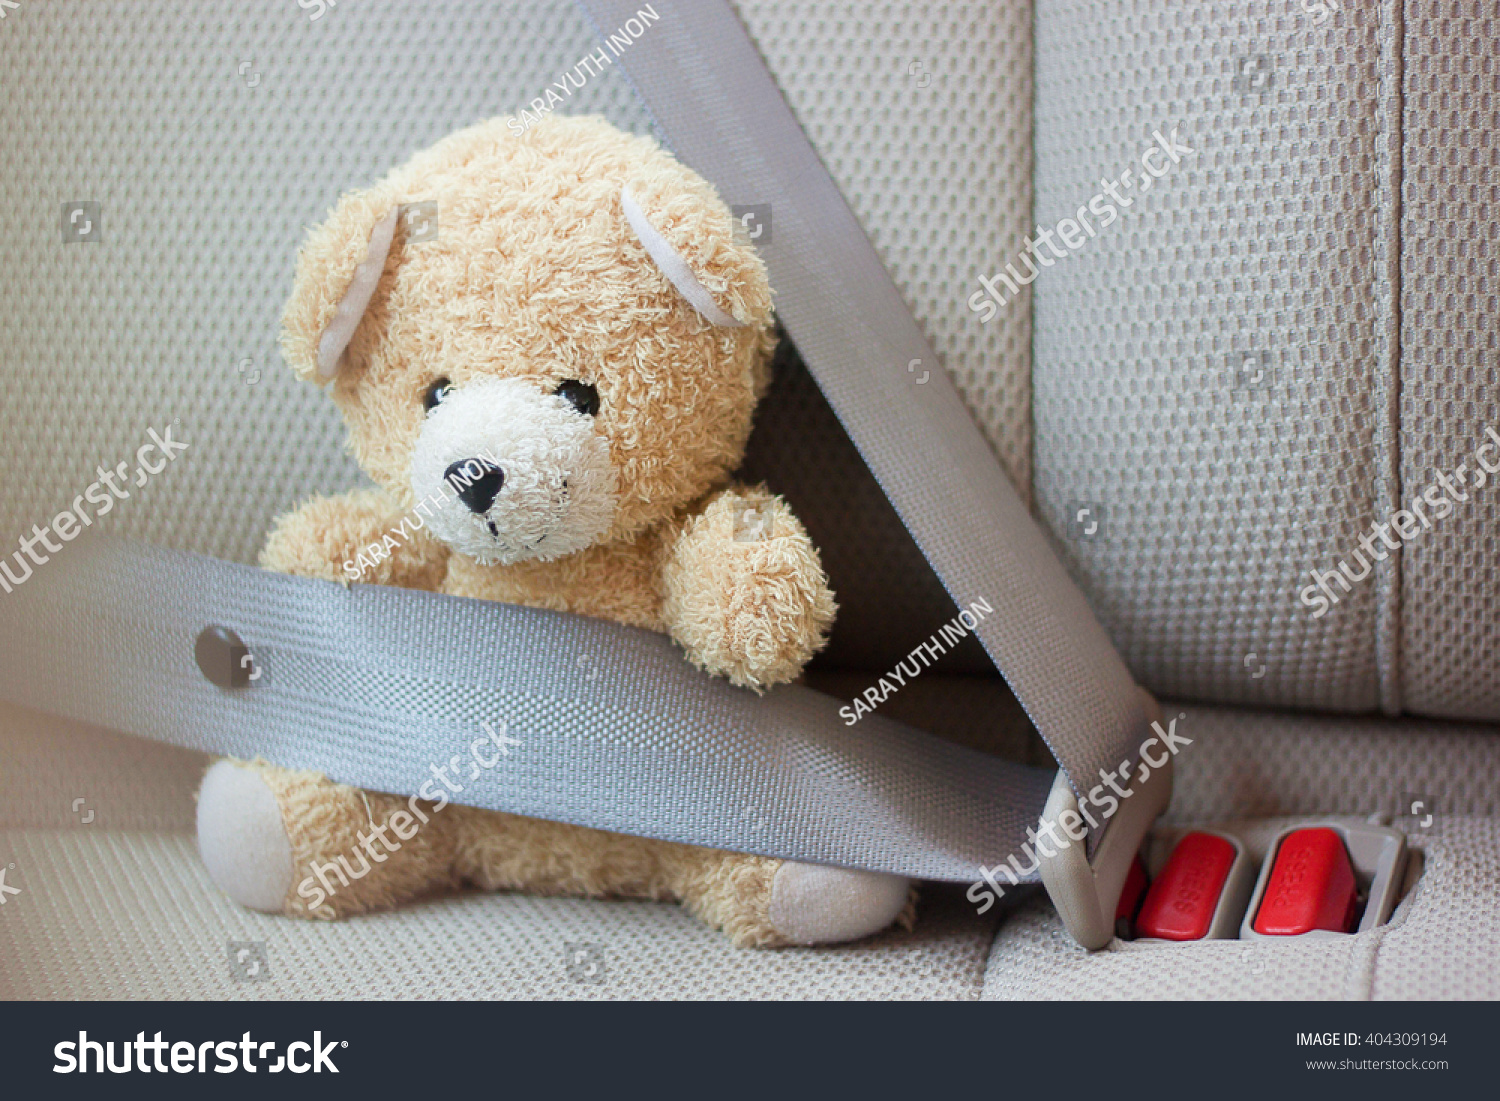 Teddy Bear Fasten Seat Belt for Safety in Car Insurance Concept Safety Concept